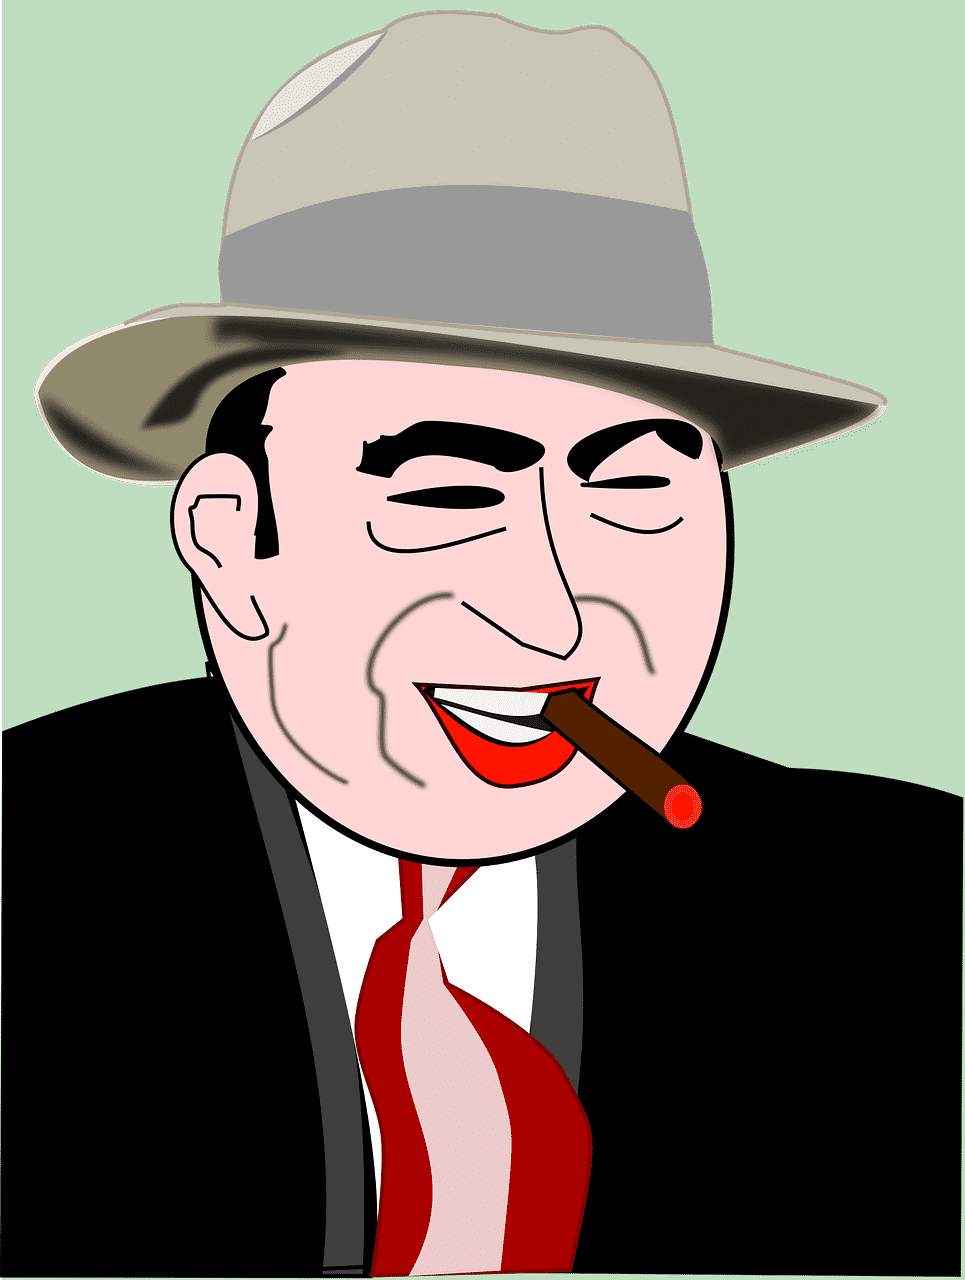 Syphilis and Al Capone: The Disease That Took Down the Most Notorious Crime Boss Image